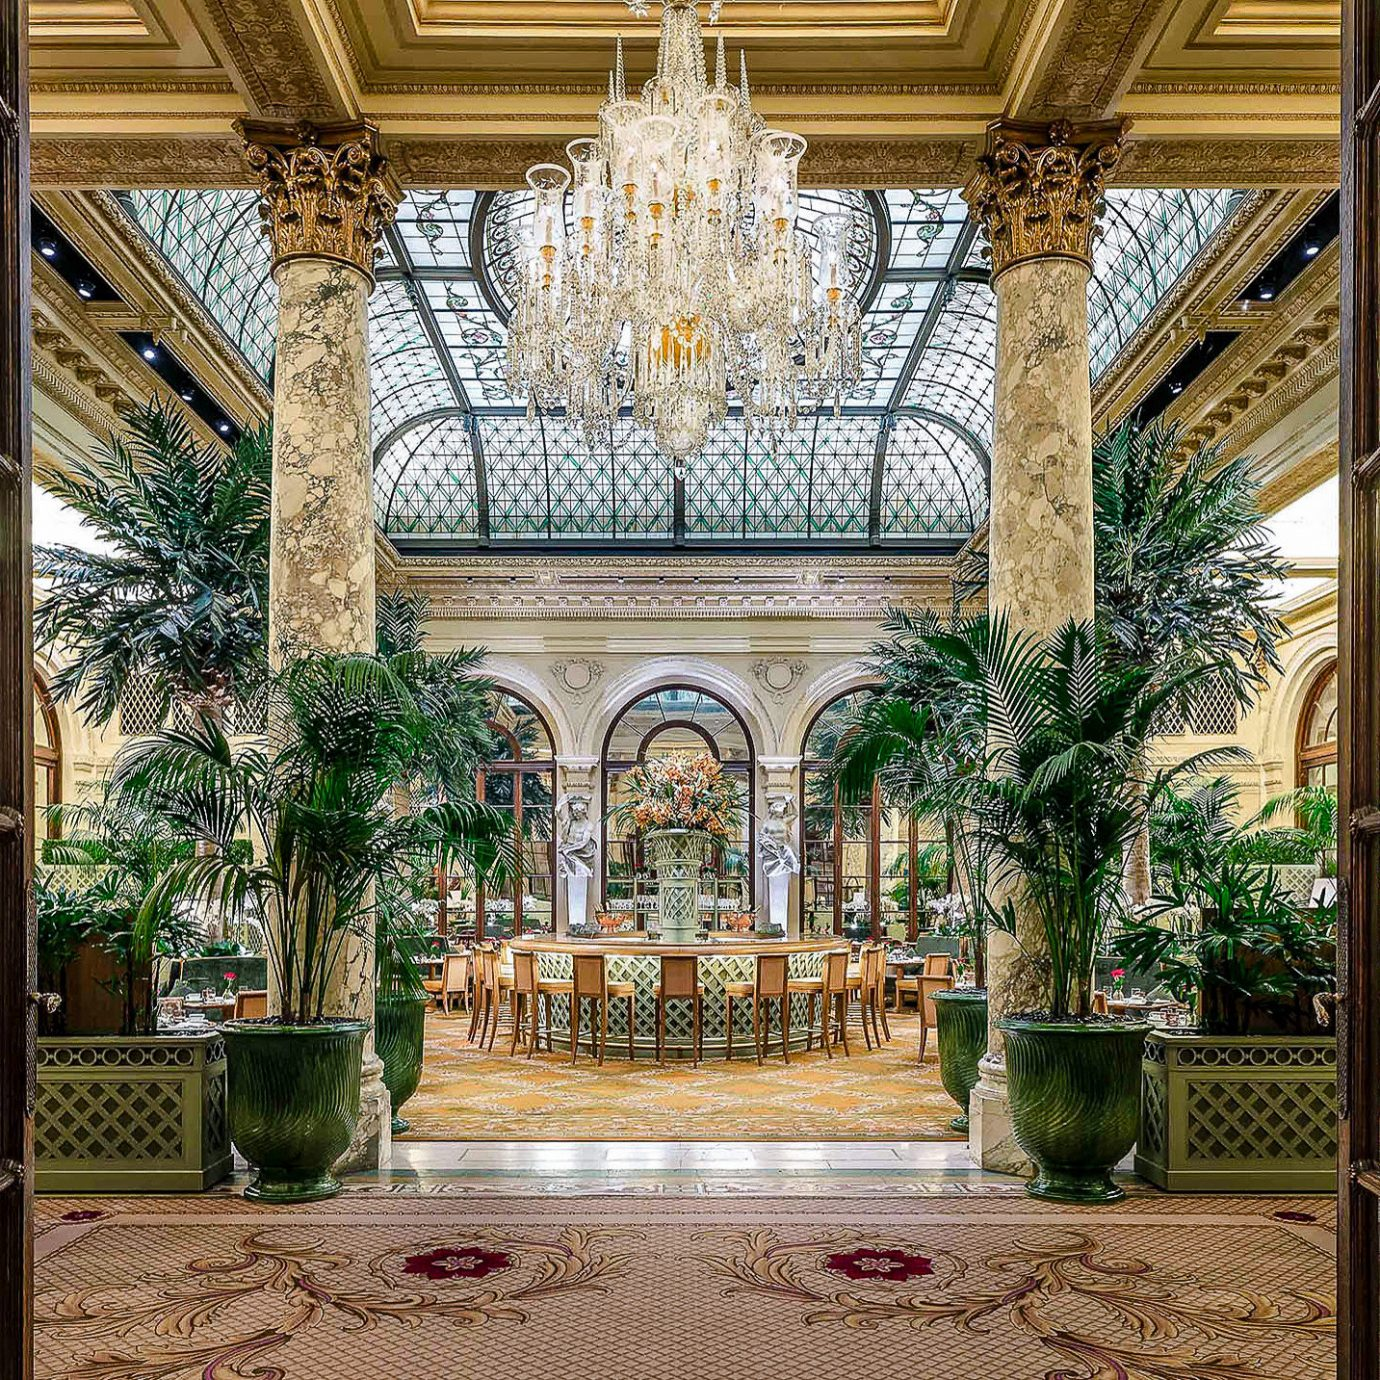 Hotels Luxury Travel Romantic Hotels Trip Ideas building Lobby Courtyard tourist attraction estate window outdoor structure arch symmetry facade tree arcade interior design walkway colonnade